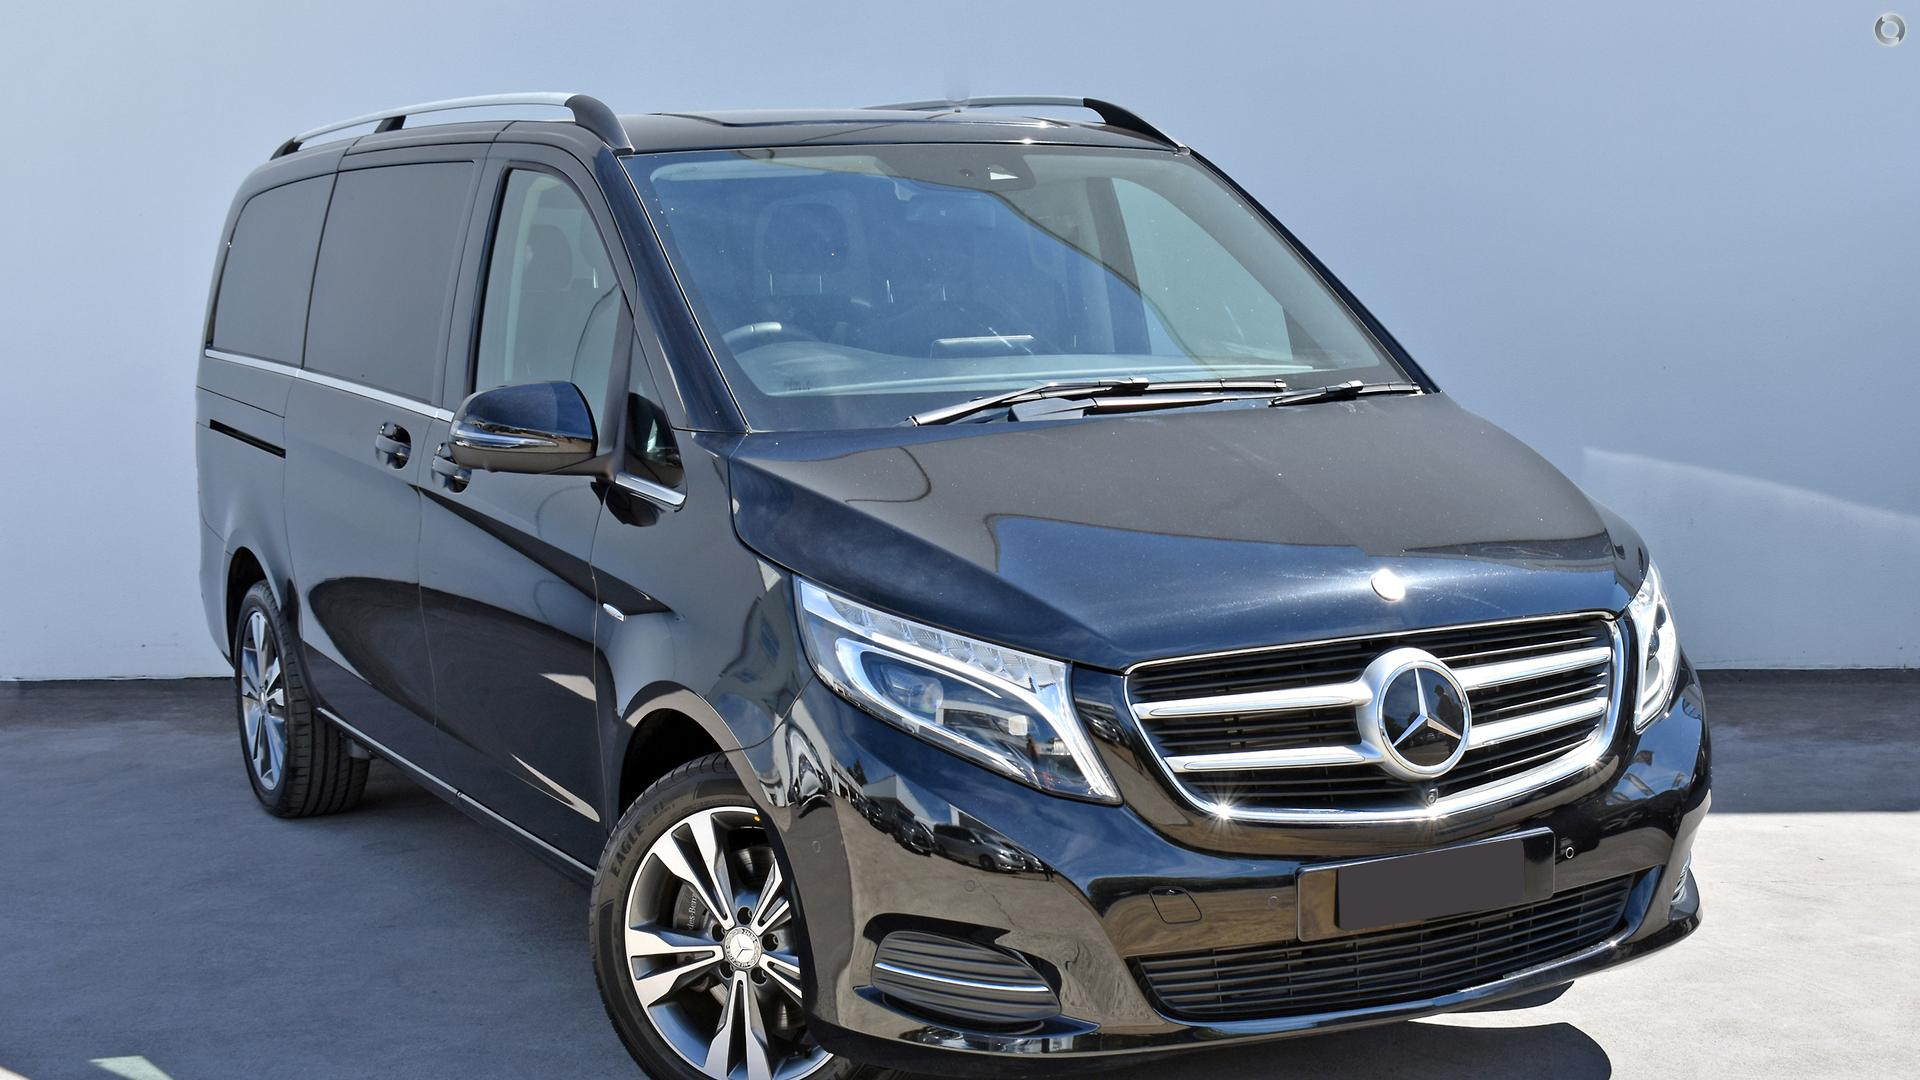 2017 Mercedes-Benz V 250 D AVANTGARDE Wagon